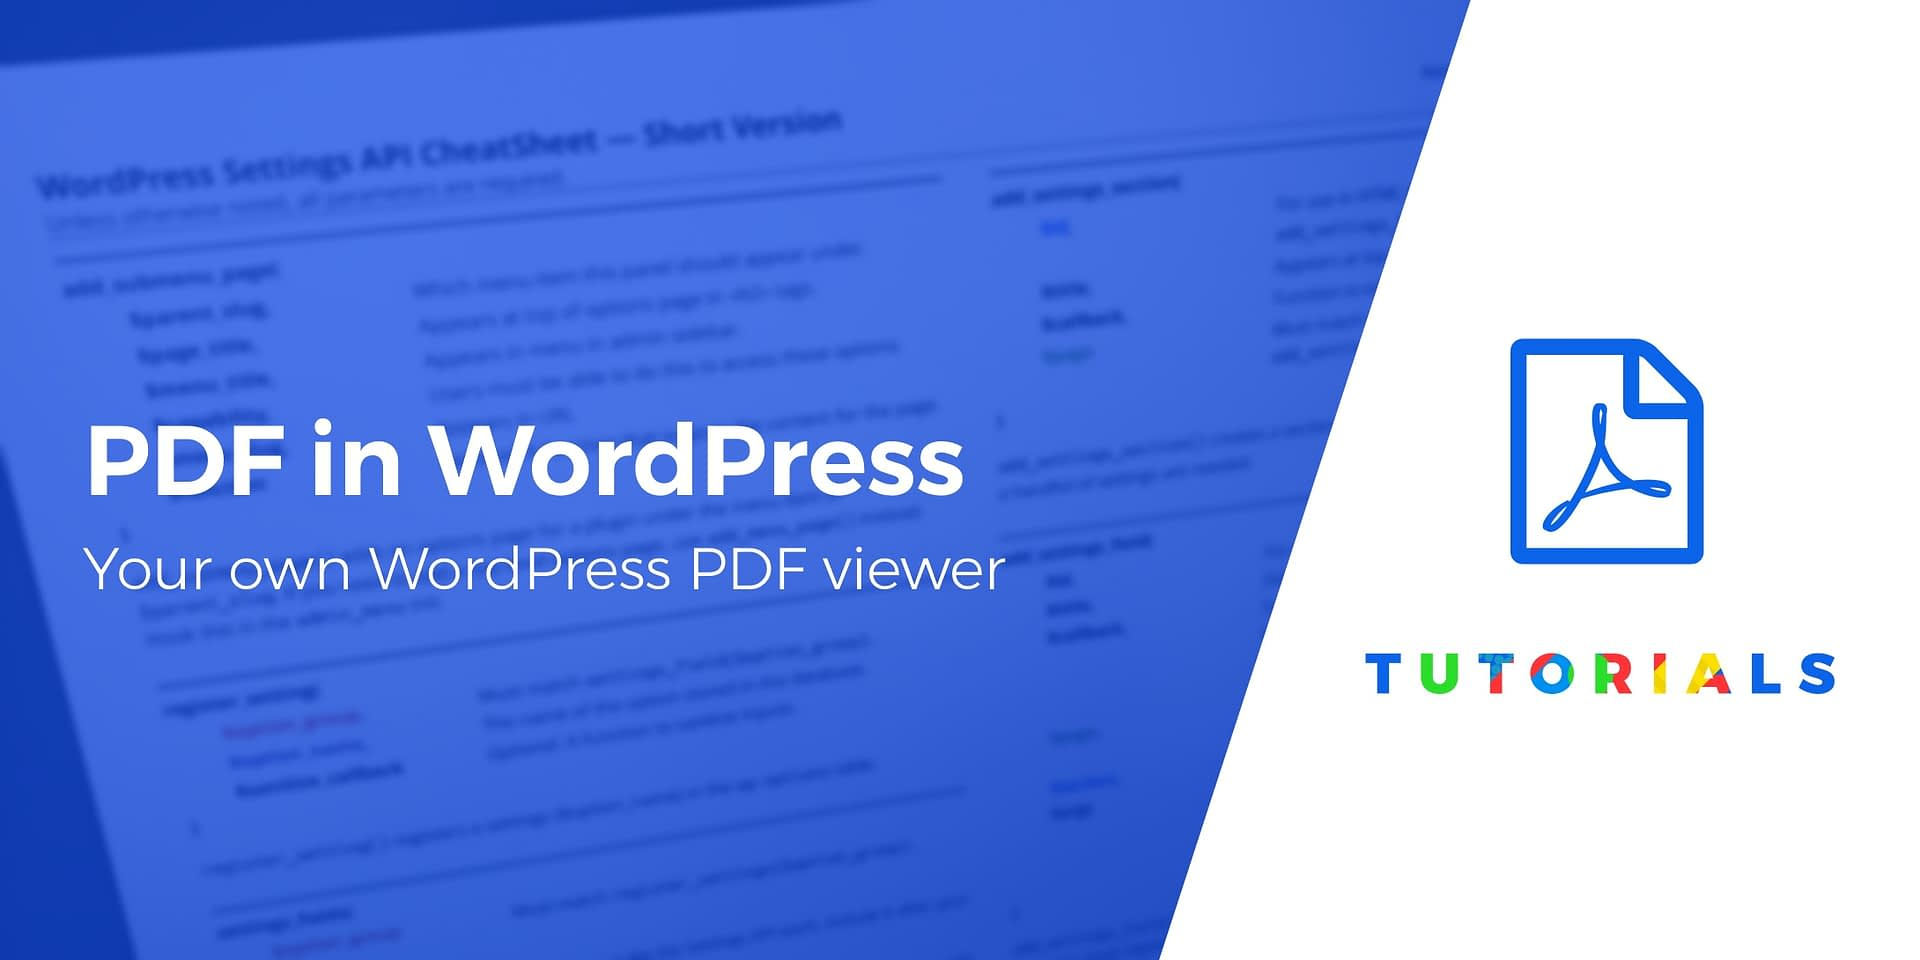 How to Display PDF in WordPress - Your Own WordPress PDF Viewer